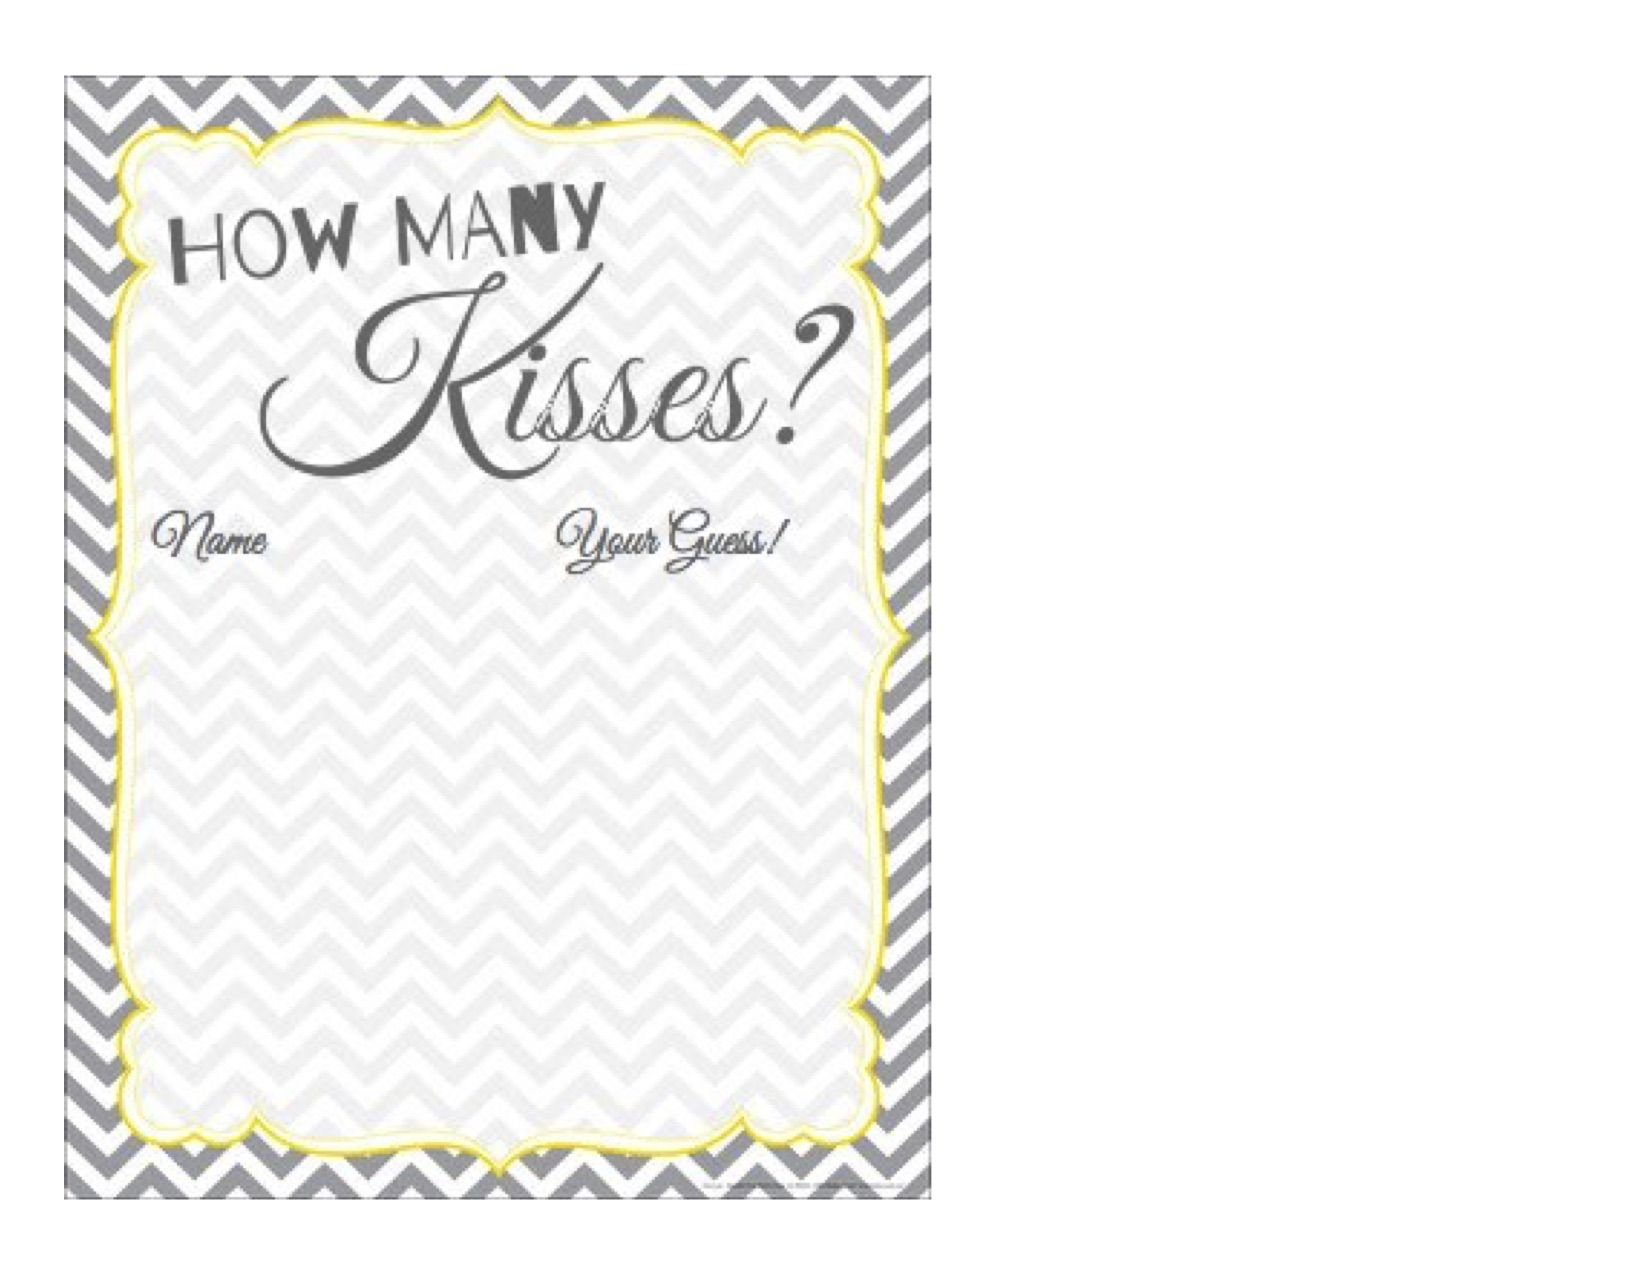 How Many Kisses? Free Printable Guessing Paper - Grey And Yellow - How Many Kisses Game Free Printable